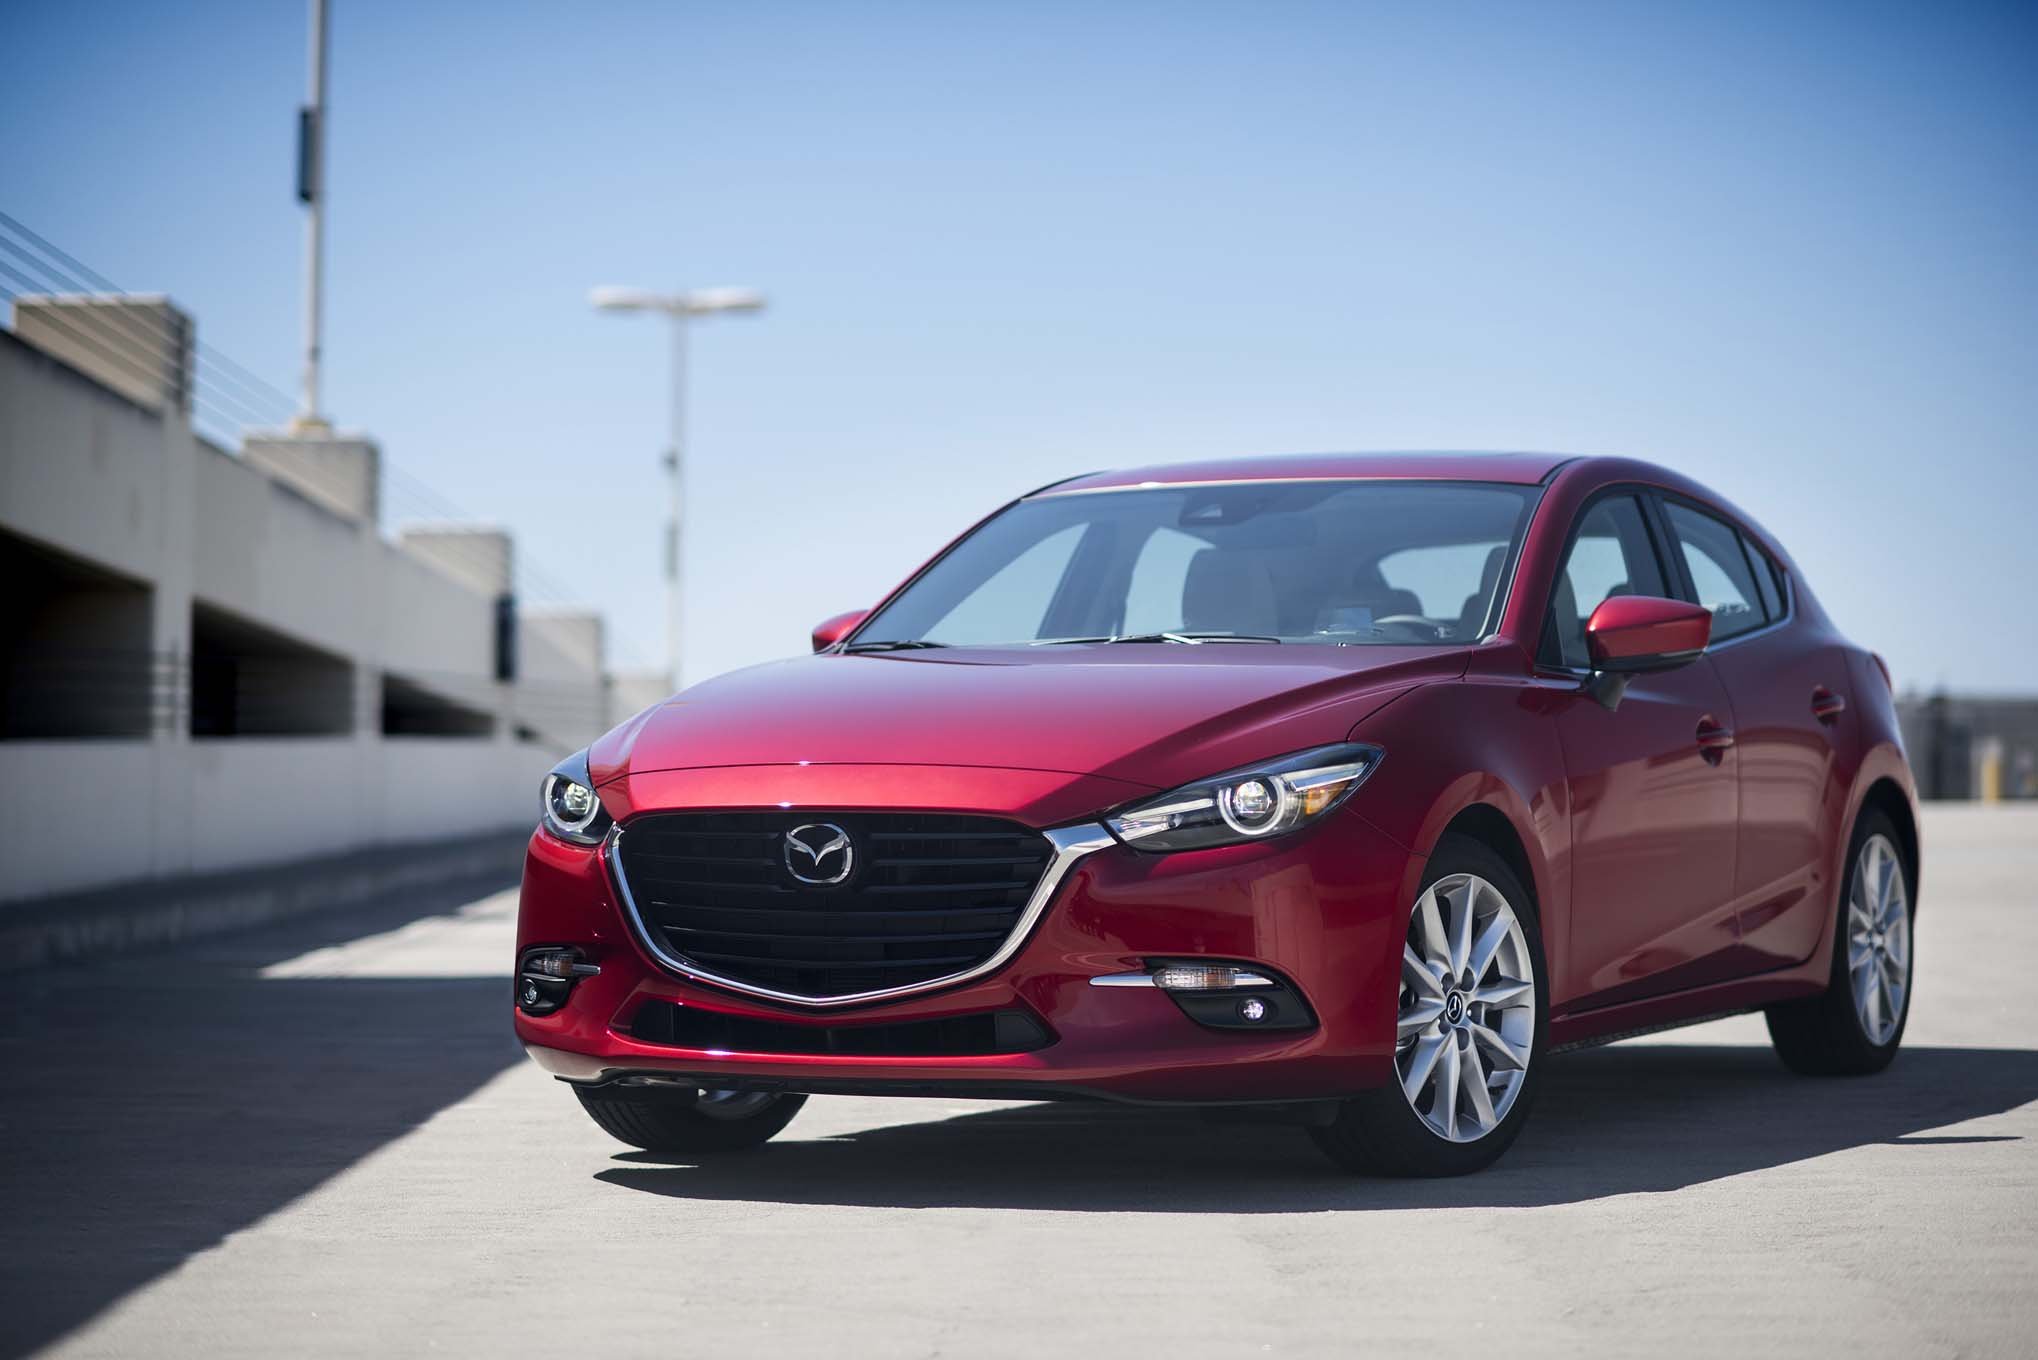 https://st.automobilemag.com/uploads/sites/10/2016/09/2017-Mazda3-front-three-quarter-02.jpg